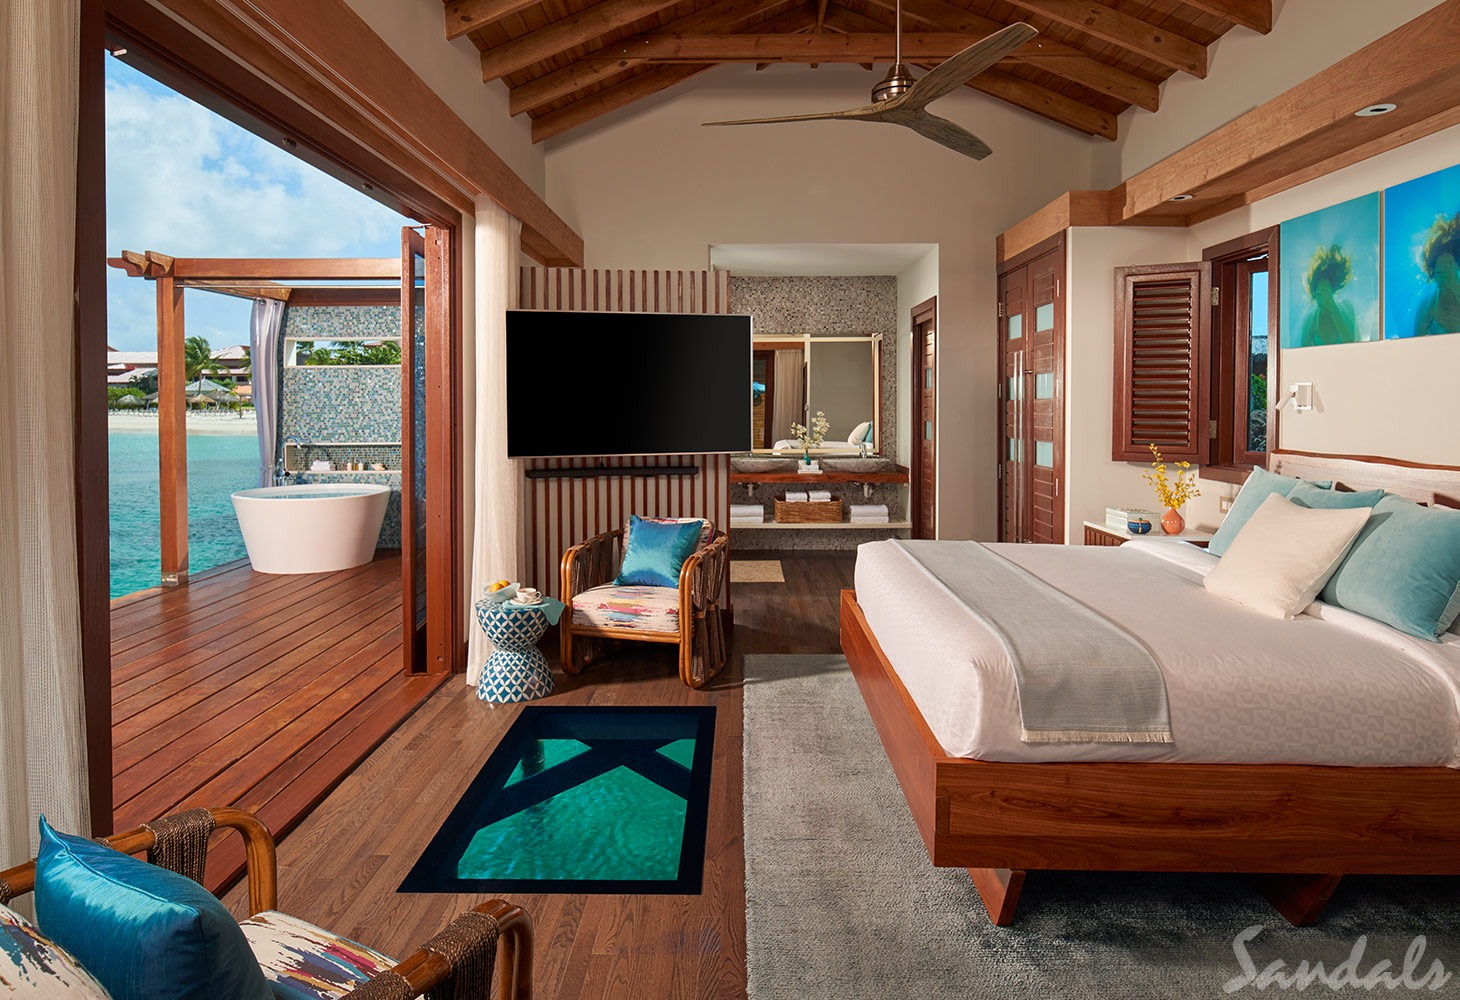 Overwater All Inclusive Luxury Honeymoon Suite at Sandals Resorts in Saint Lucia